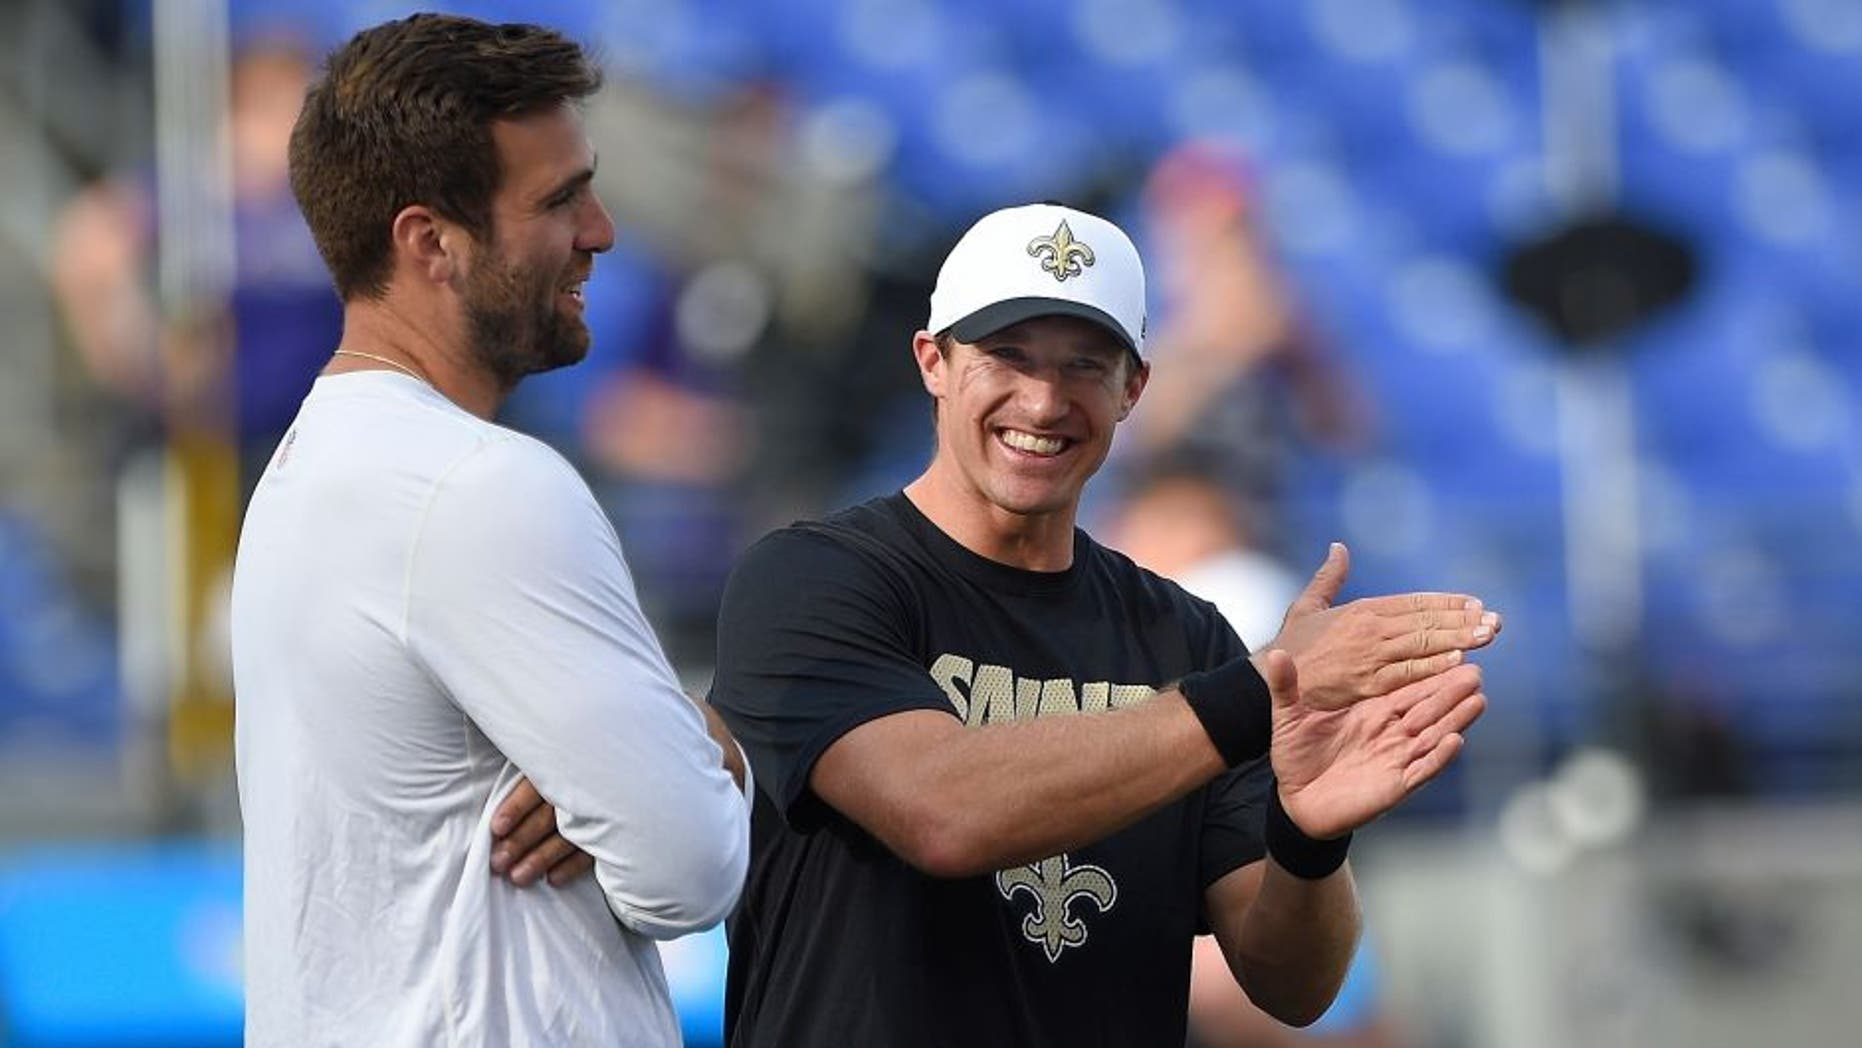 Baltimore Ravens quarterback Joe Flacco, left, talks with New Orleans Saints quarterback Drew Brees before an NFL preseason football game in Baltimore, Thursday, Aug. 13, 2015. (AP Photo/Nick Wass)